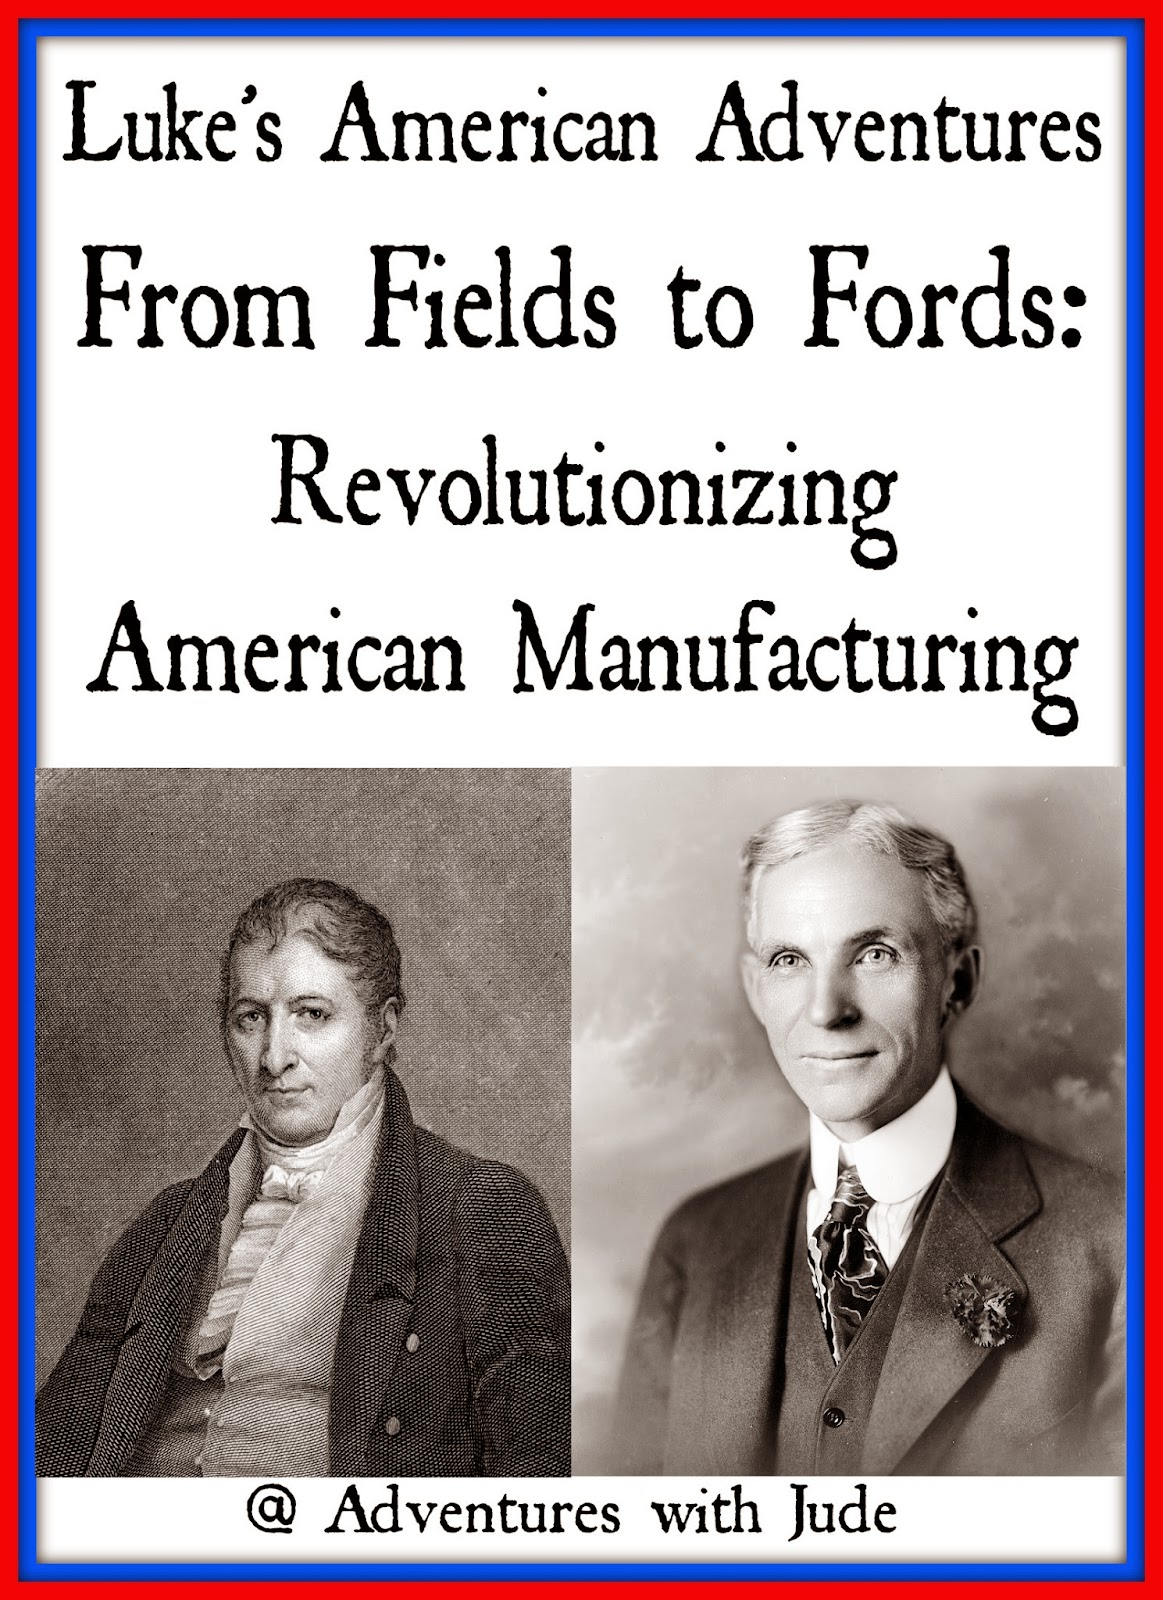 Luke's American Adventures From Fields to Fords Revolutionizing American Manufacturing